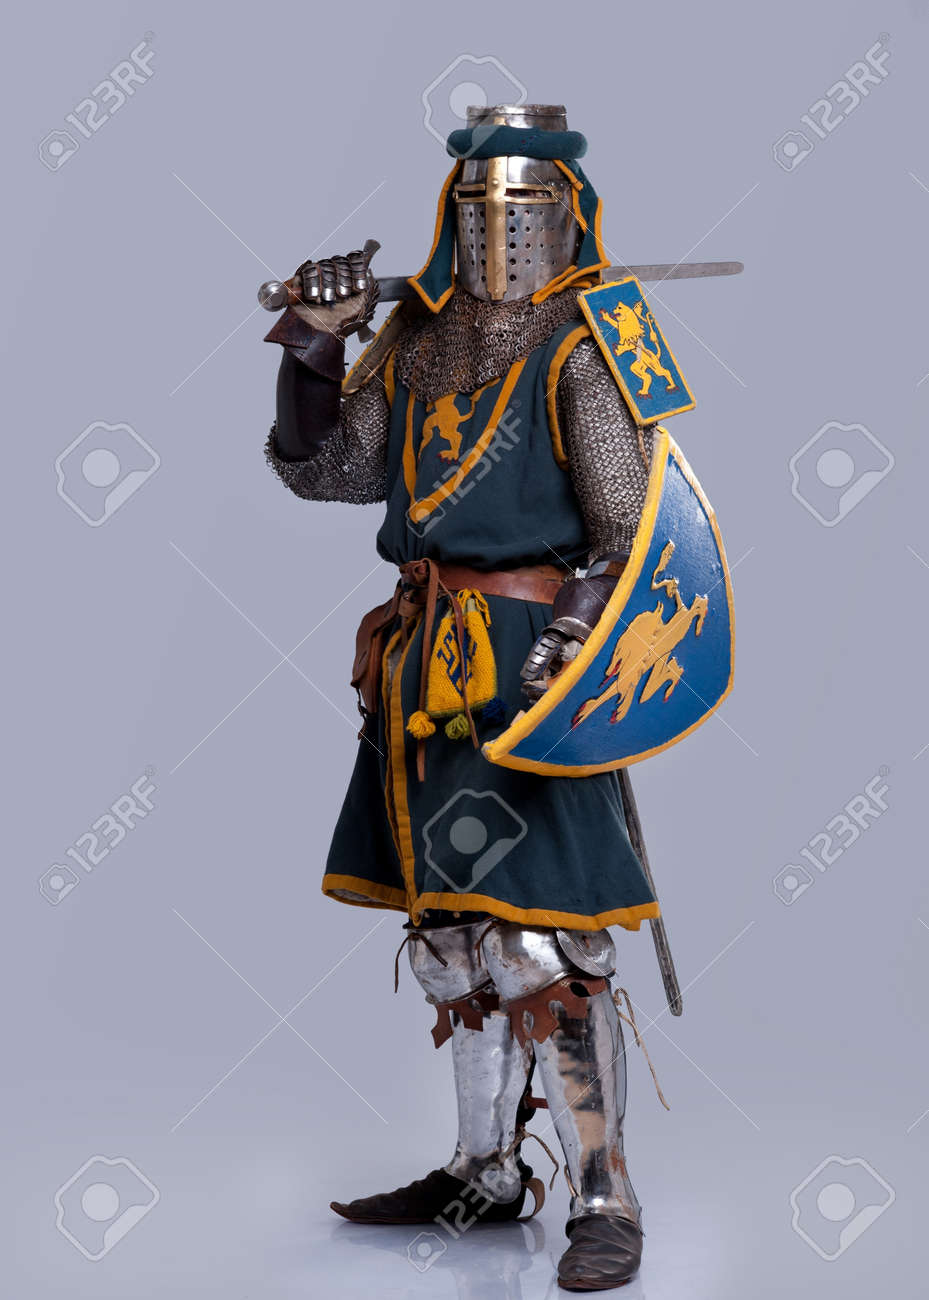 Medieval knight isolated on grey background. Stock Photo - 12079945